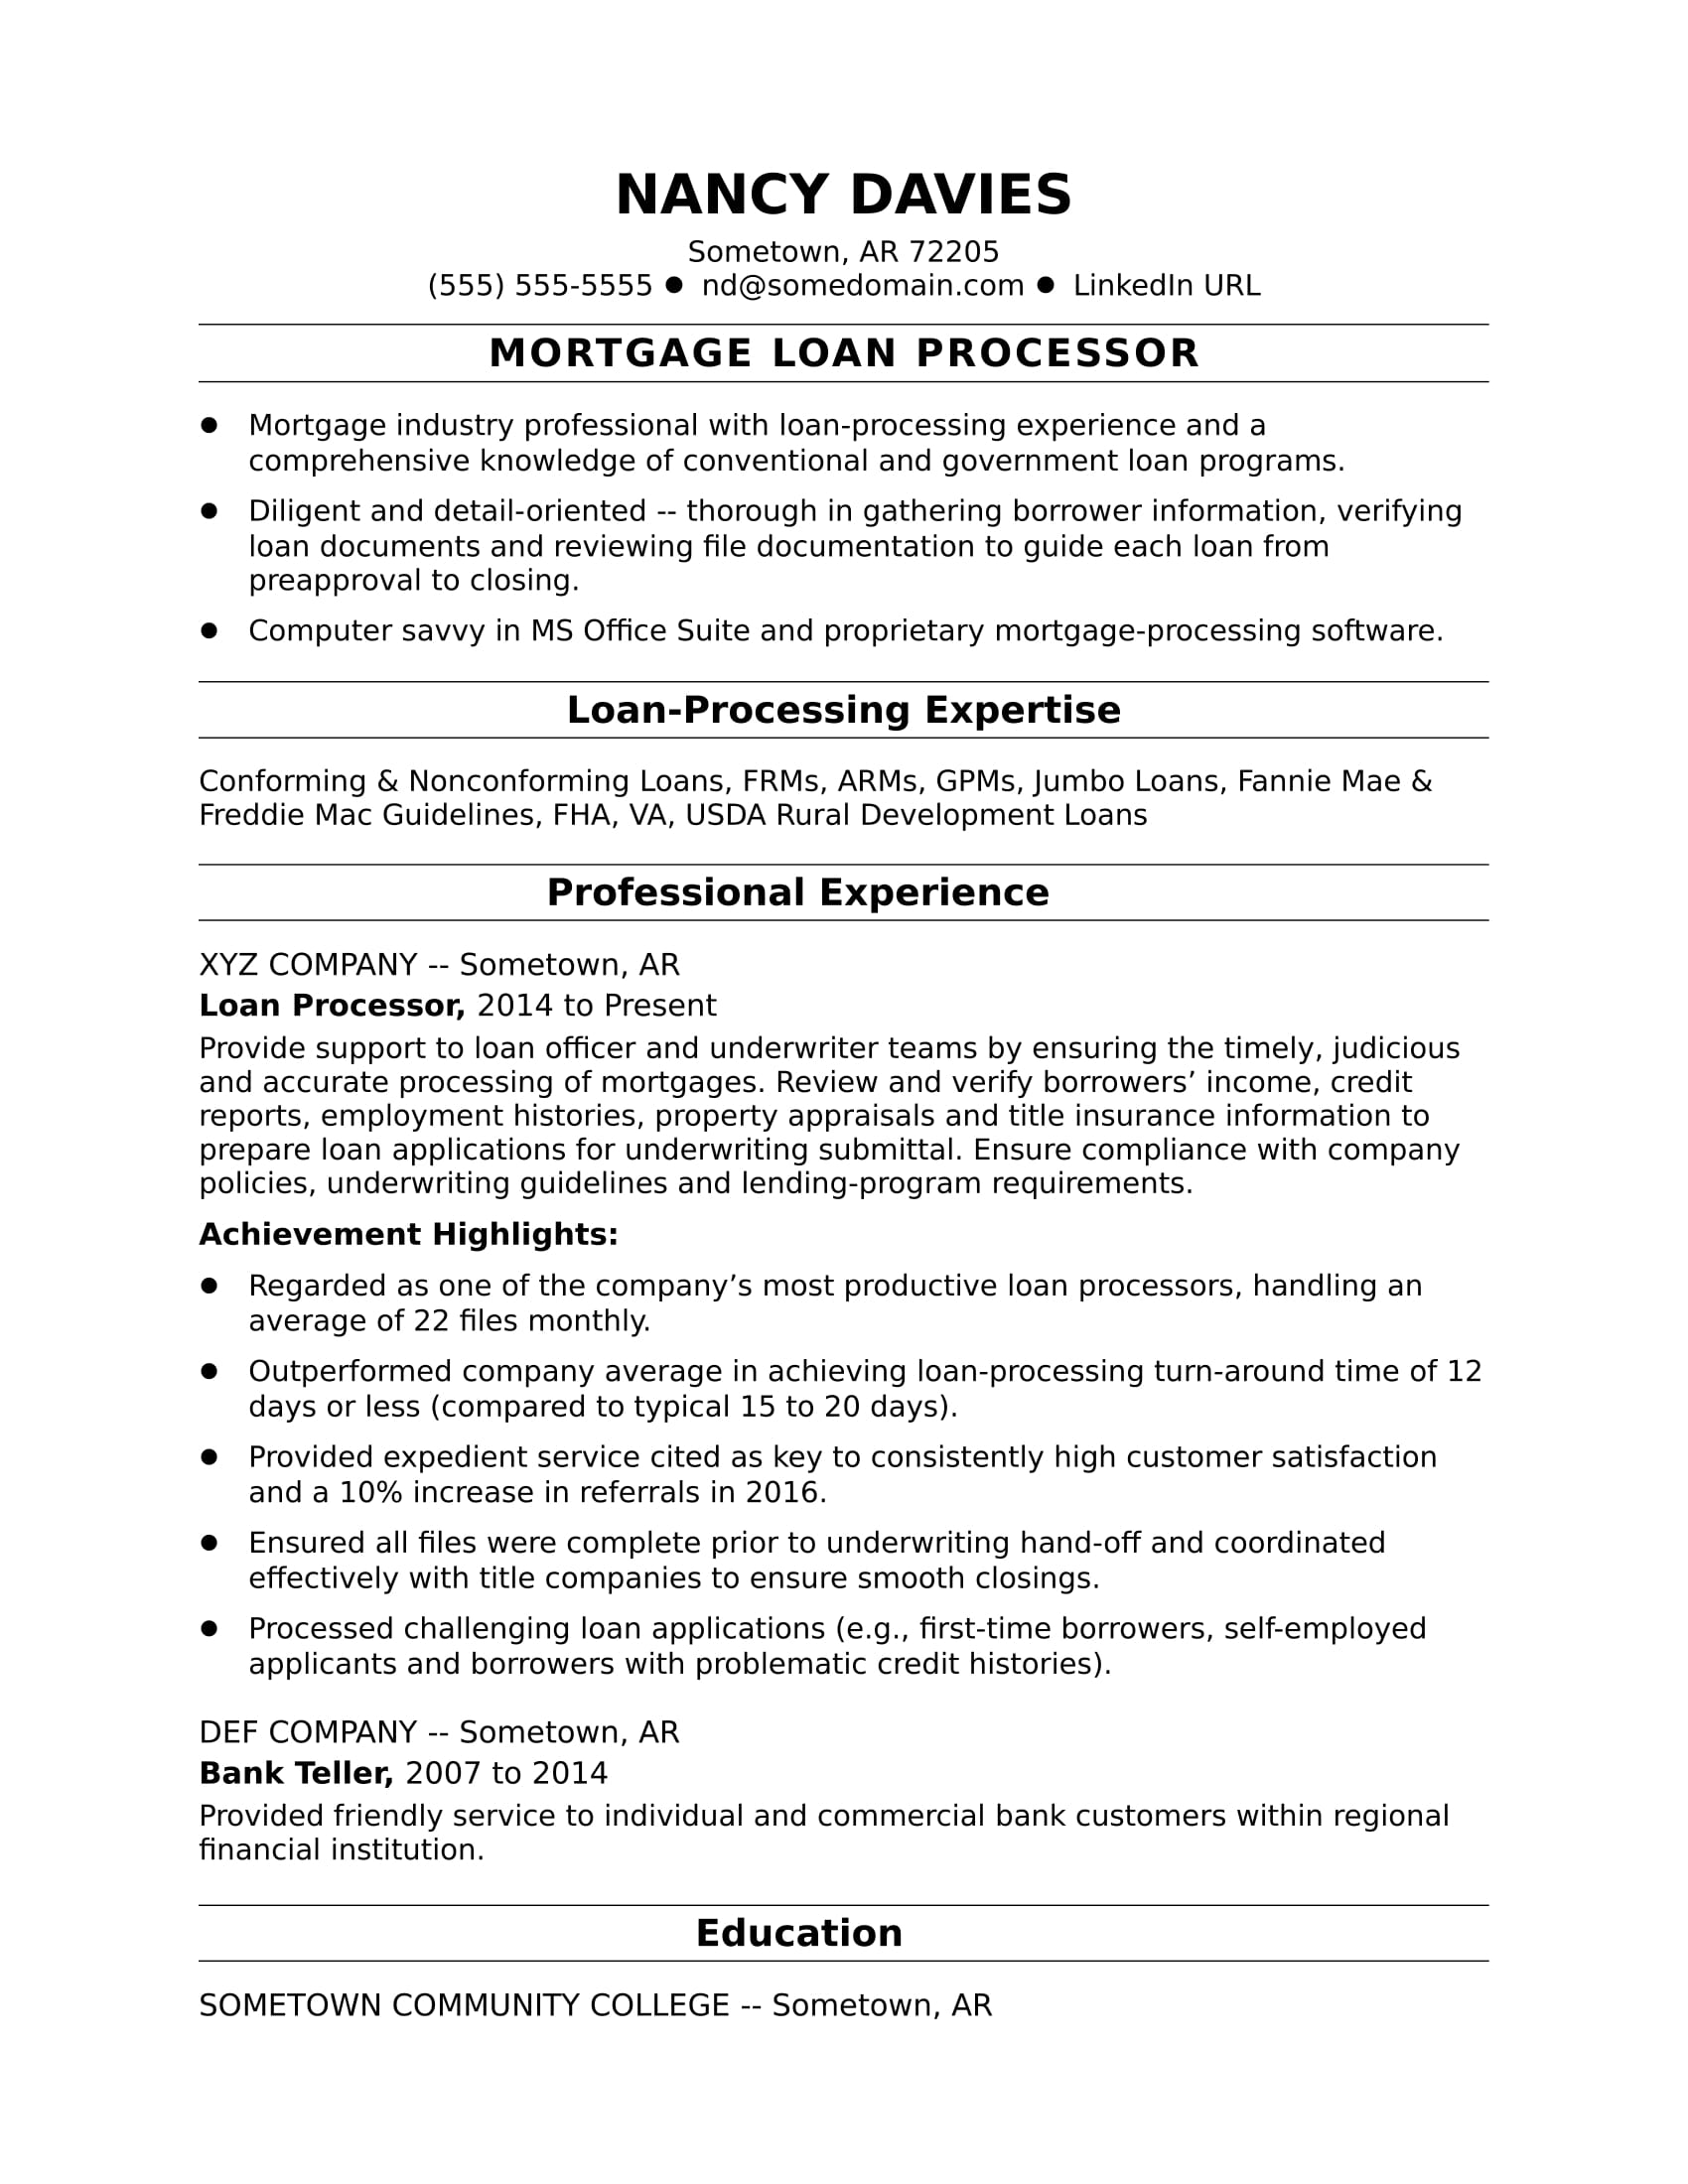 mortgage loan processor resume sample monster duties and responsibilities clifton Resume Sample Resume Duties And Responsibilities